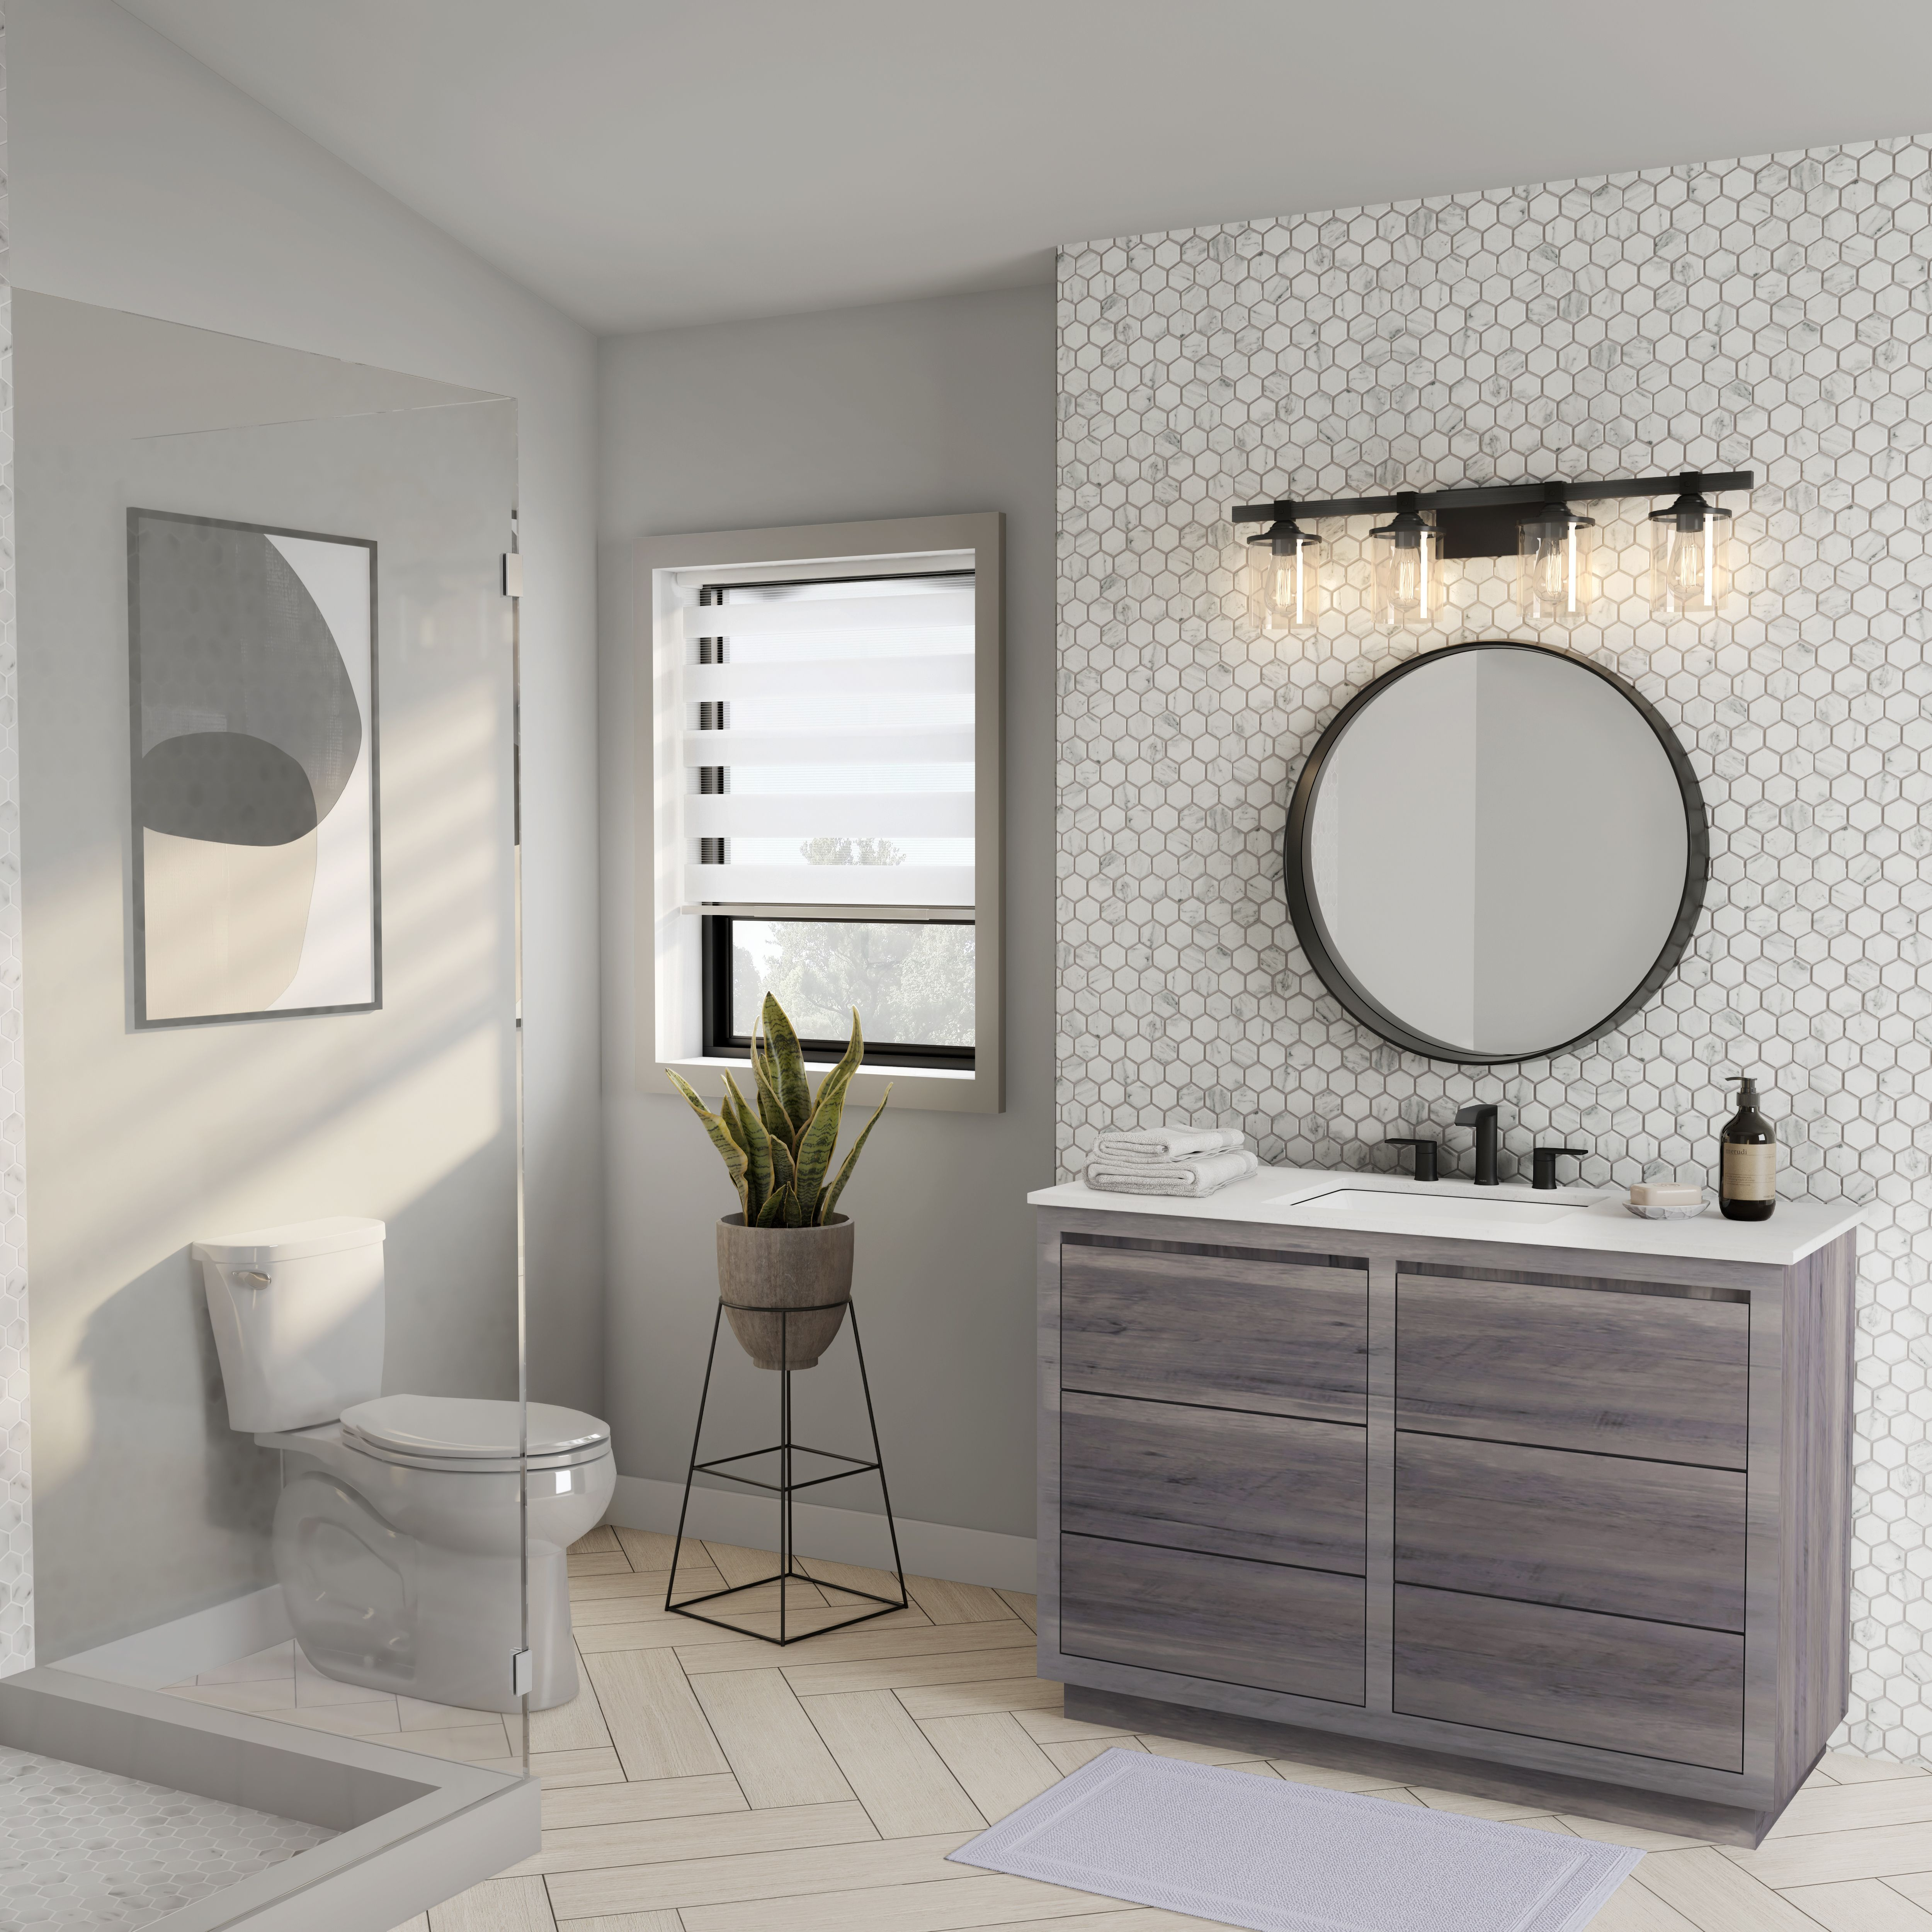 Whether you're looking for a modern bathroom vanity or ...